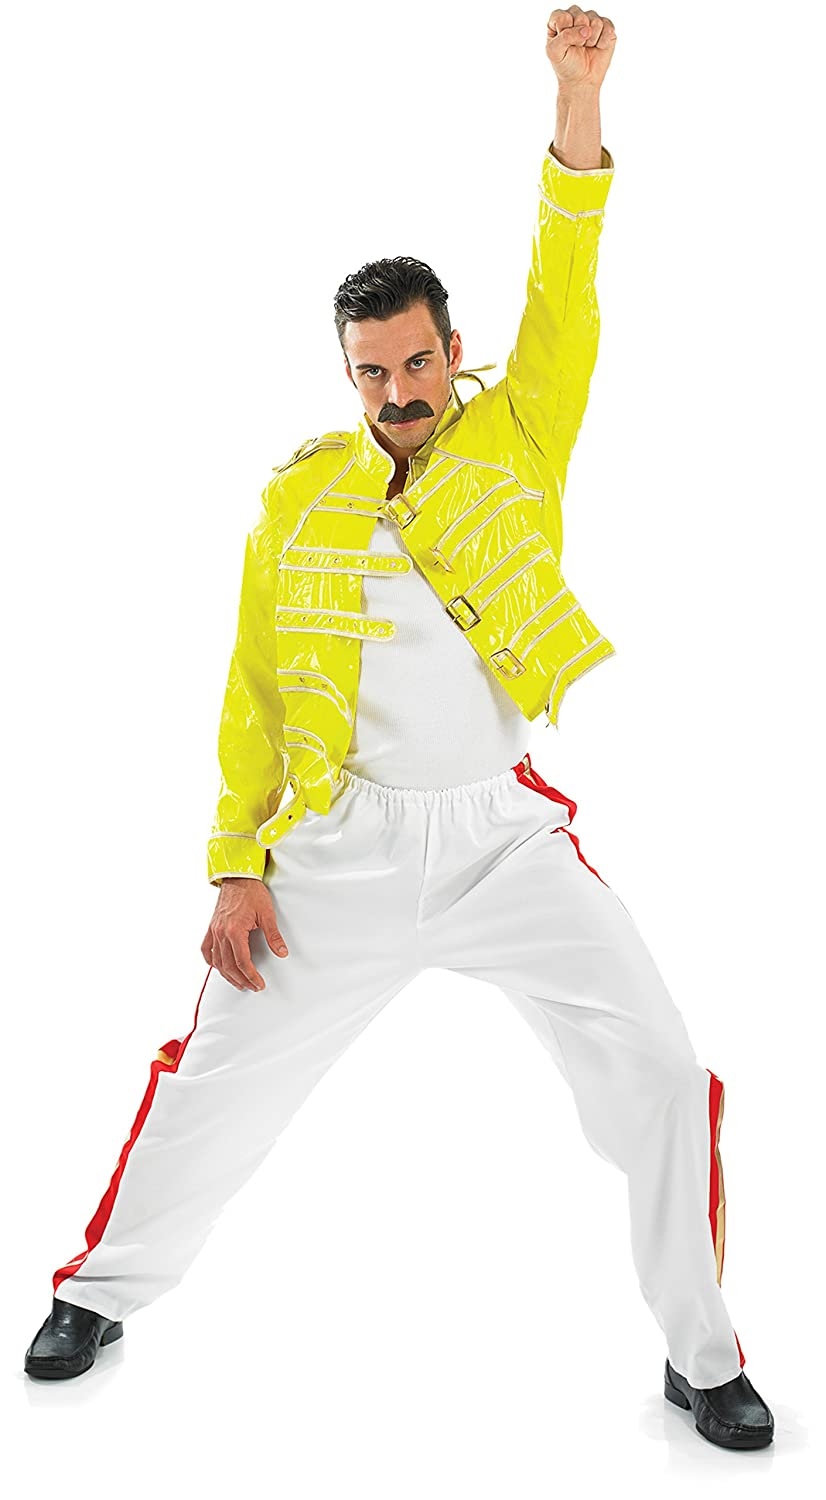 Freddie Mercury Wembley Outfit - We all remember Freddie's flamboyant performances on stage with his band Queen. In this costume you'll be instantly recognised as the legendary singer.